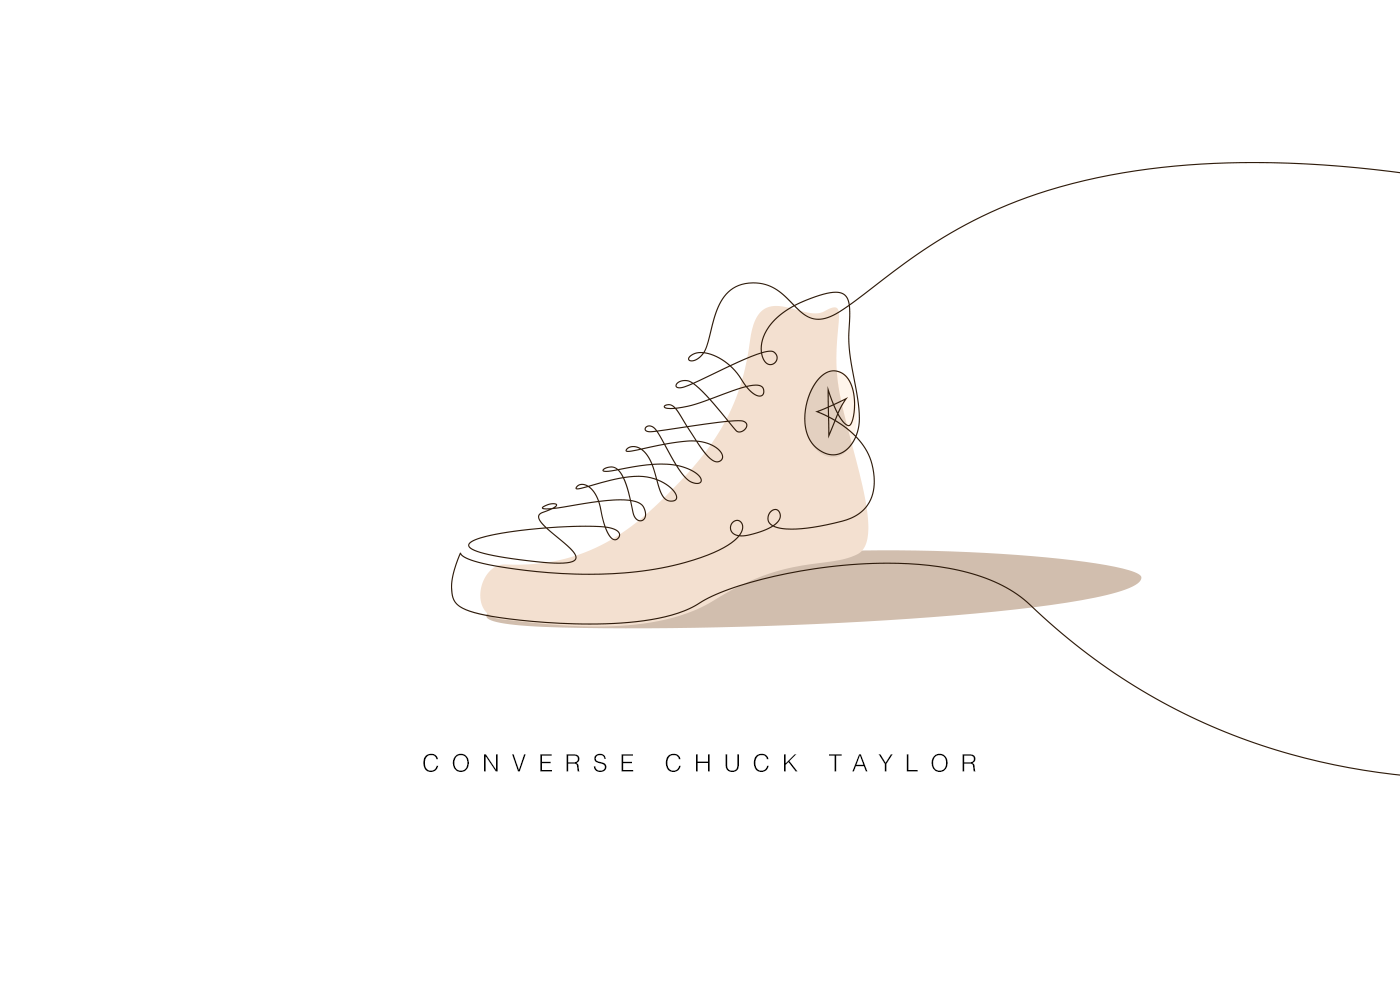 sneakers-chucktaylor-01